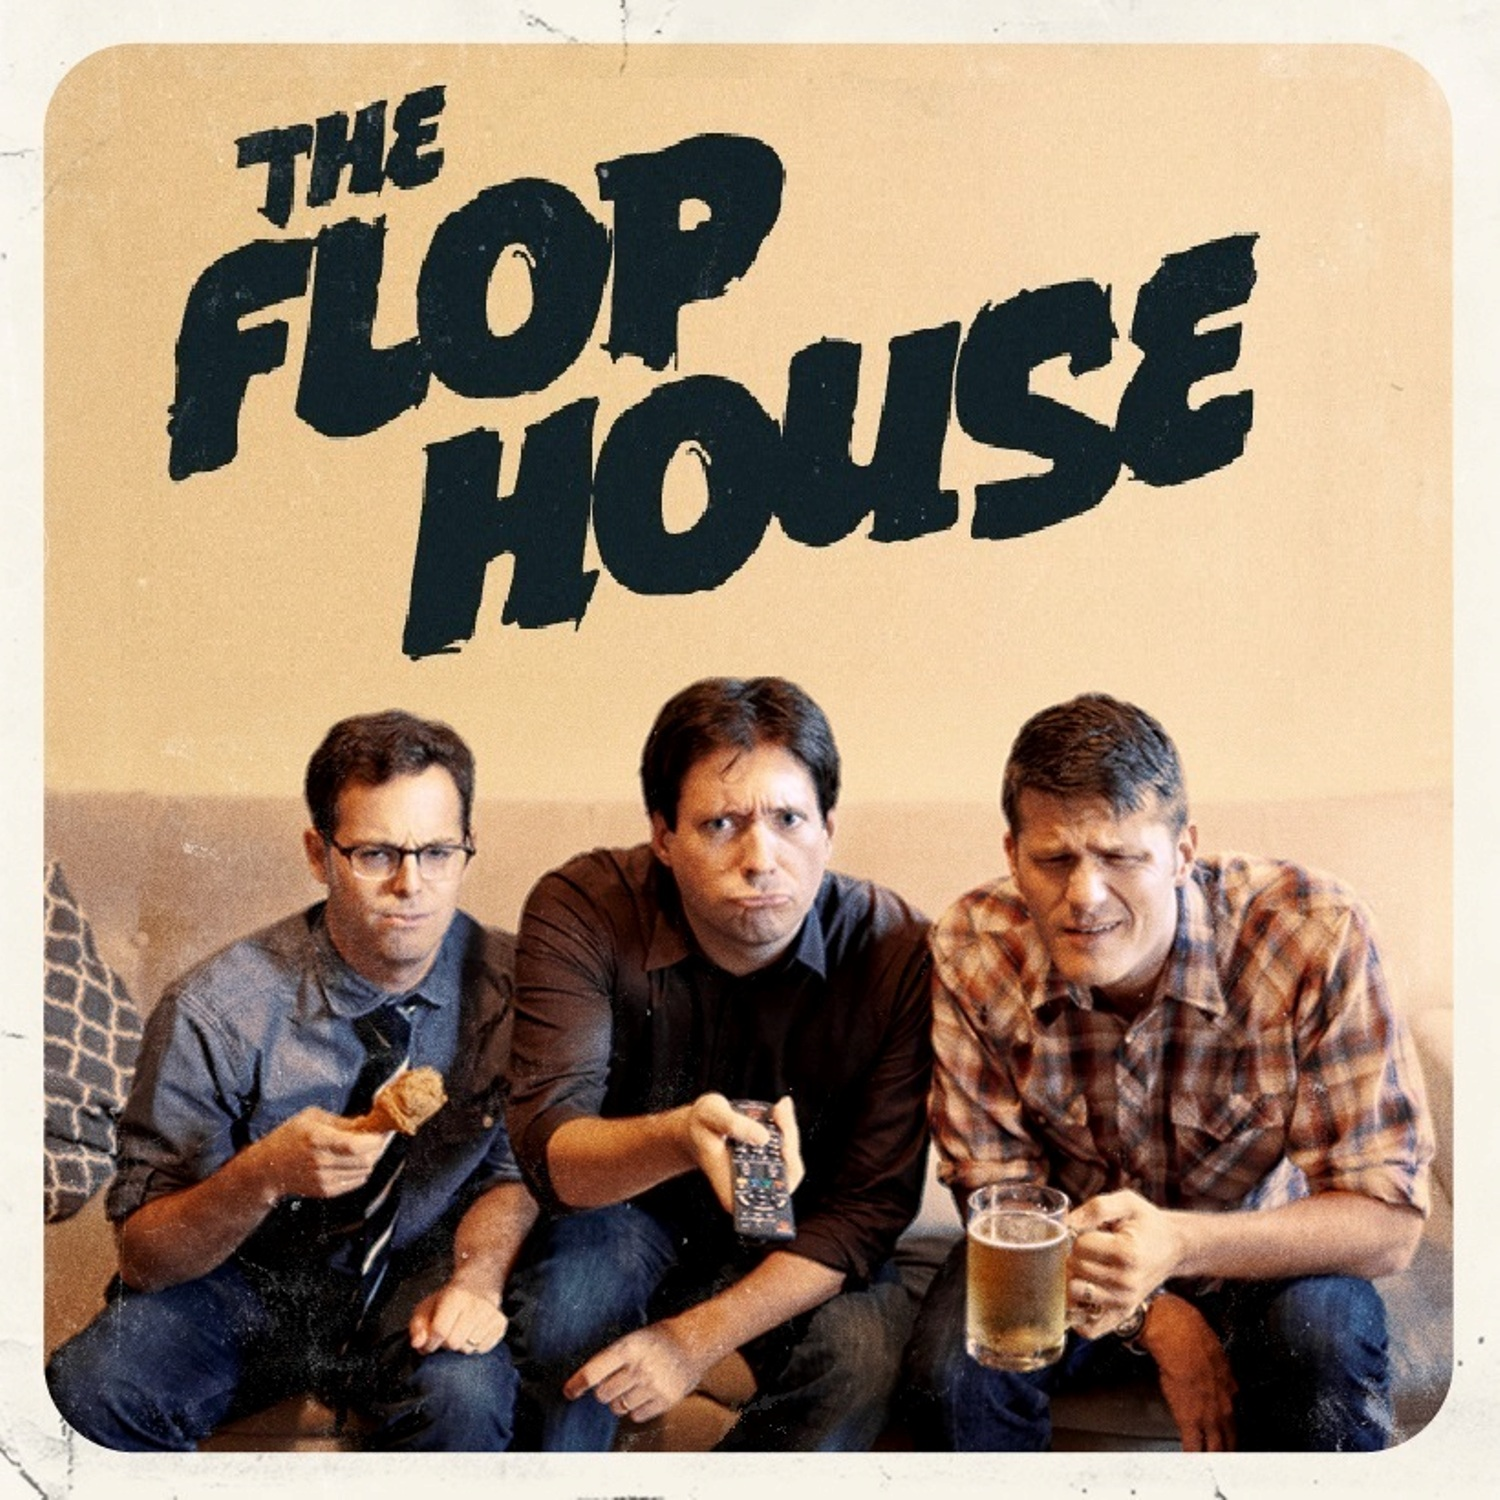 The Flop House logo